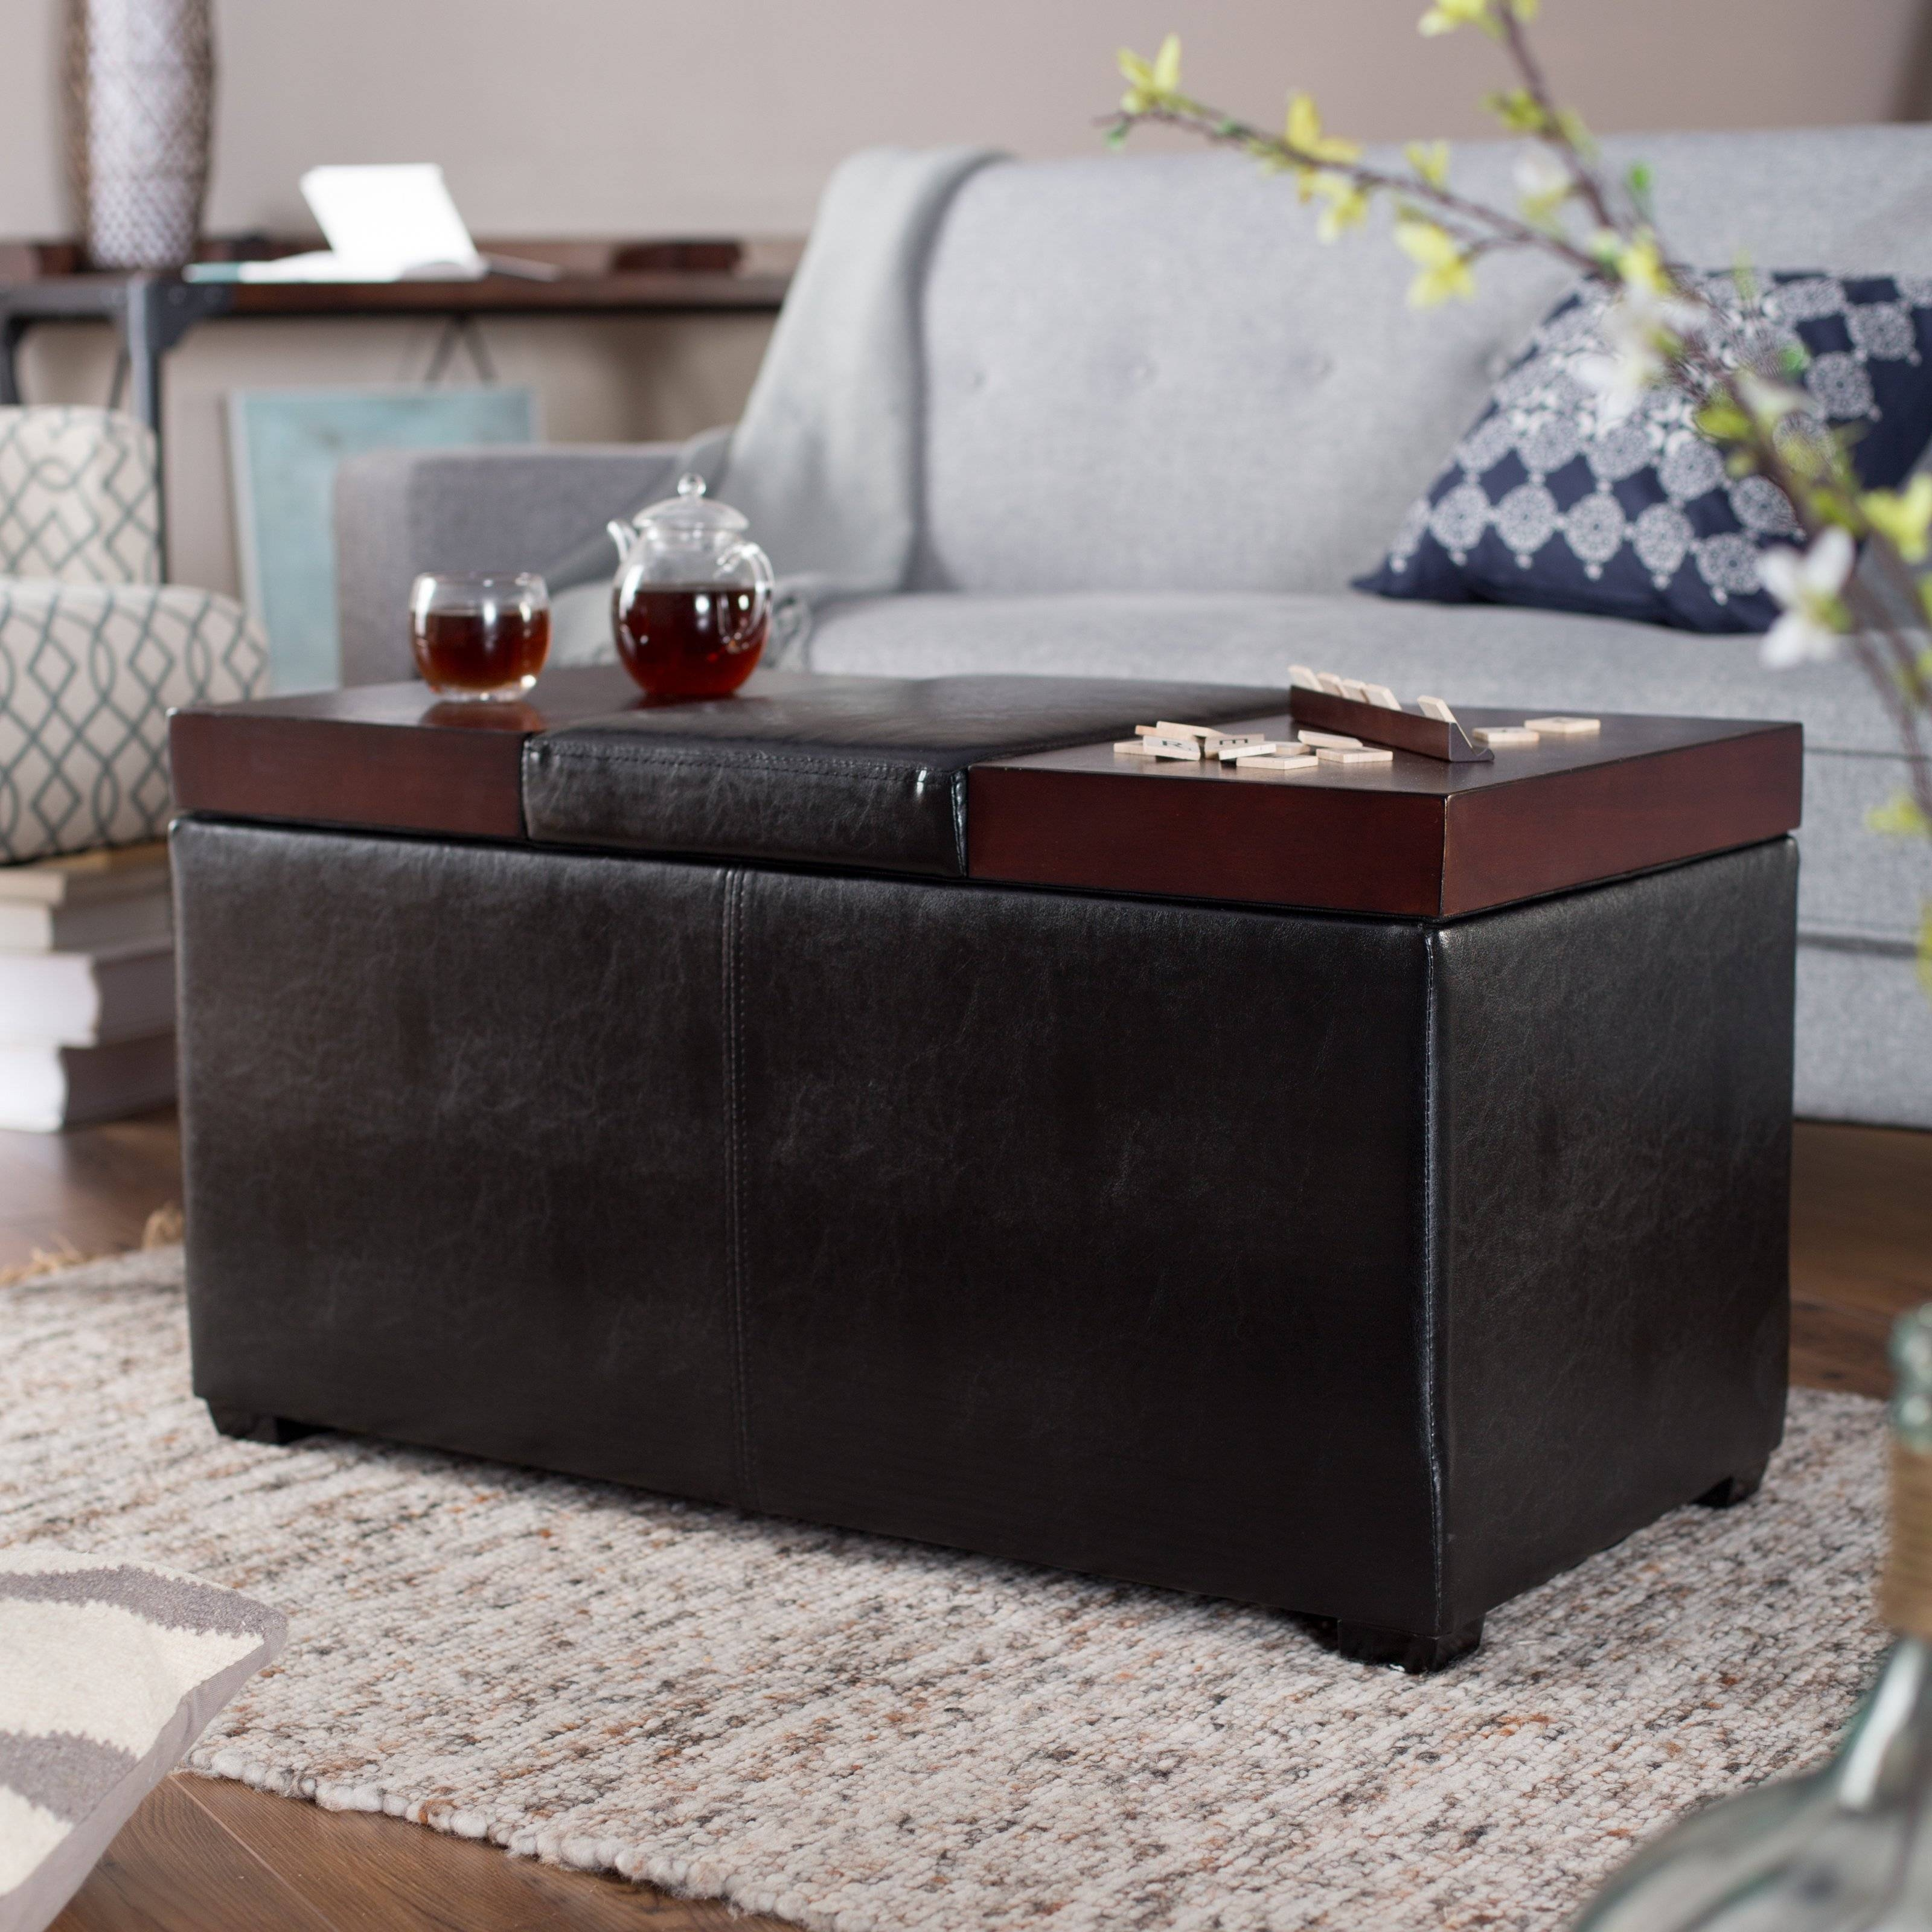 Storage Coffee Tables In The Model Of Cabinet Like | The New Way with Coffee Tables With Storage (Image 28 of 30)